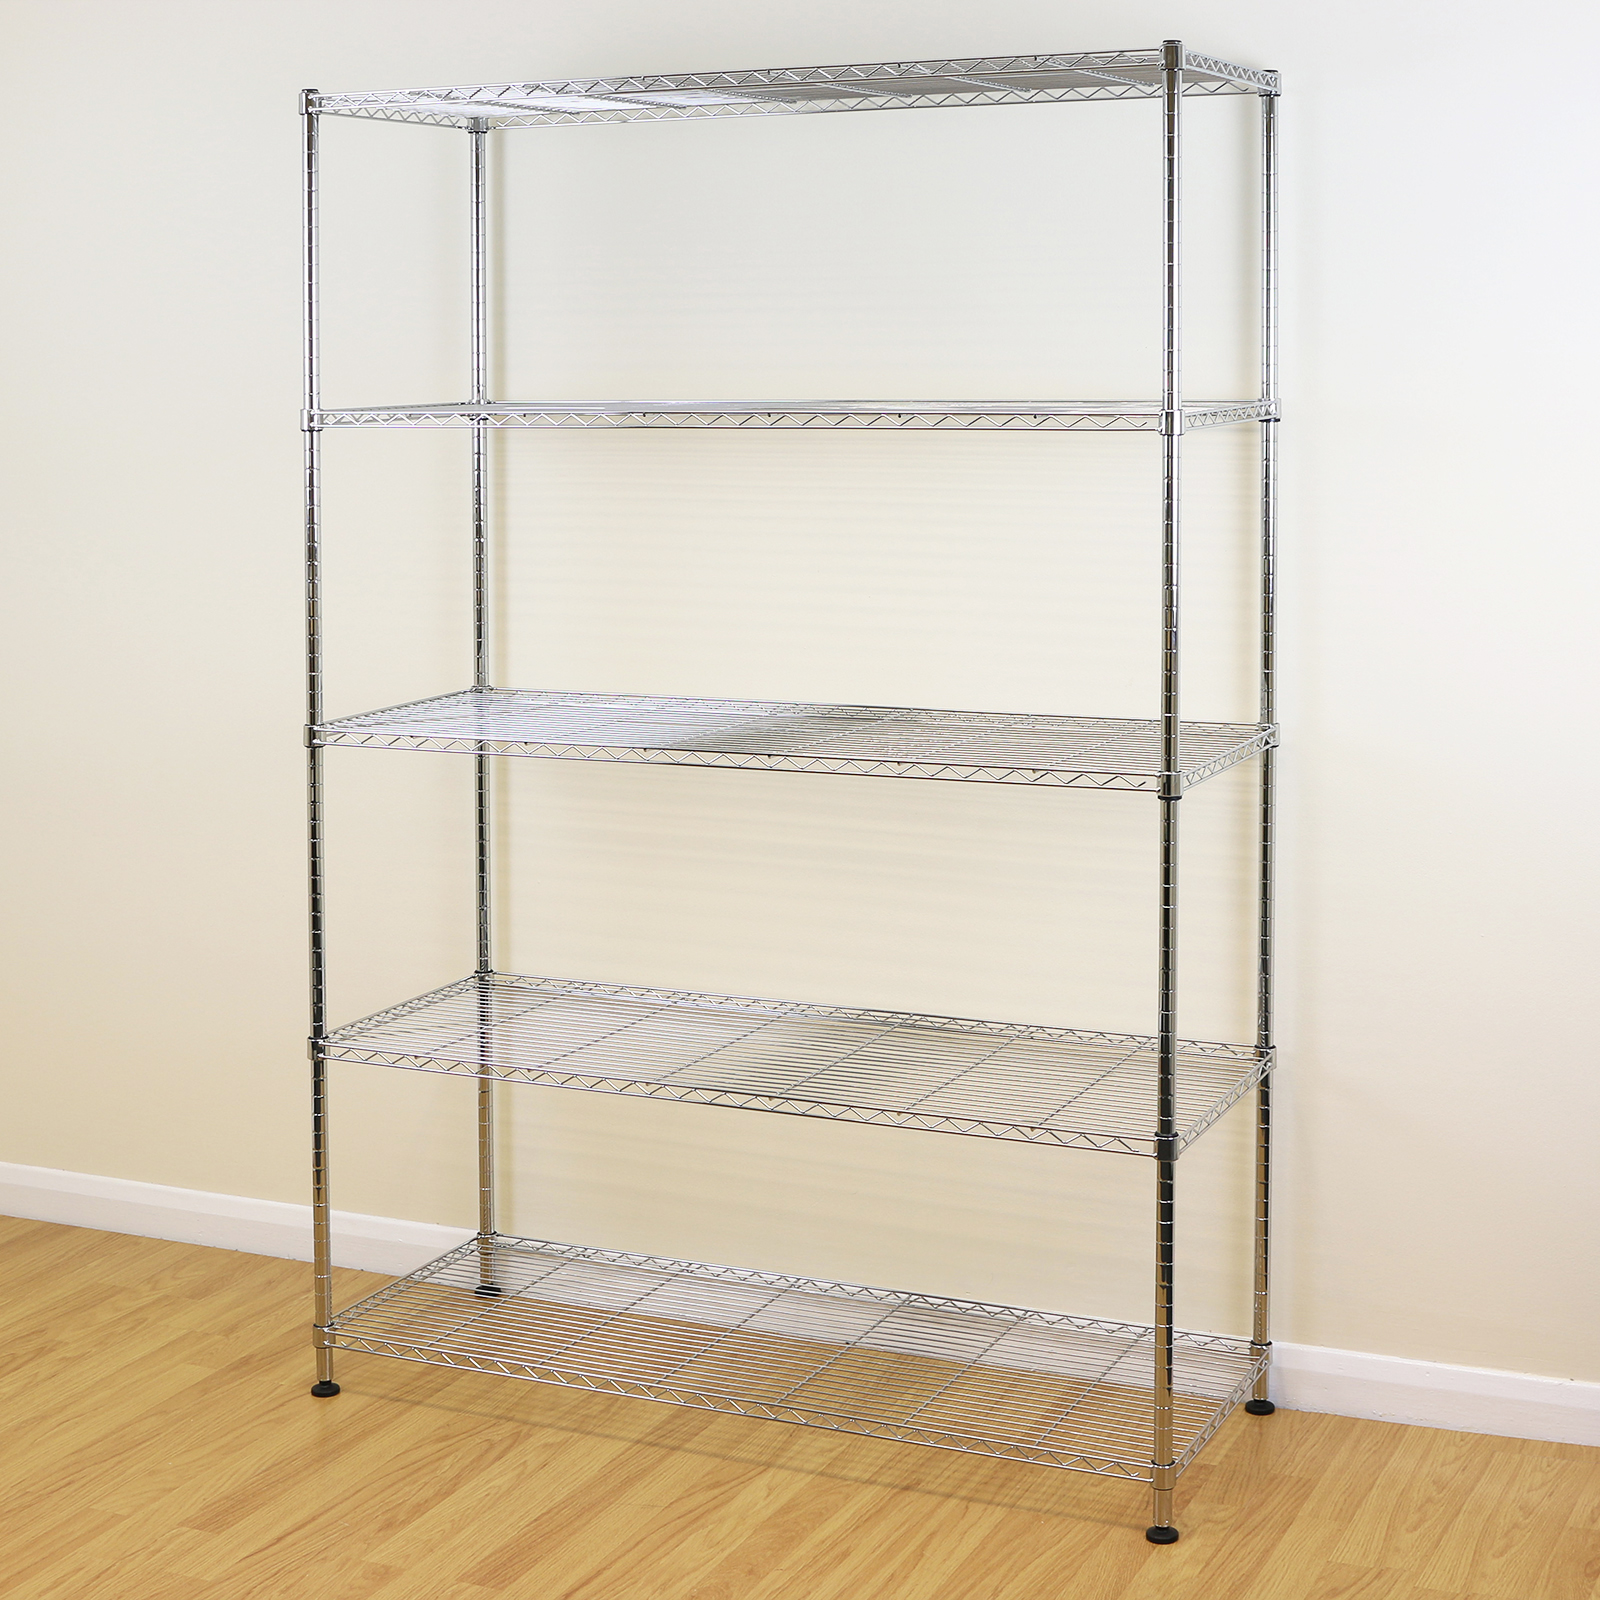 5 tier chrome metal storage rack shelving wire shelf. Black Bedroom Furniture Sets. Home Design Ideas